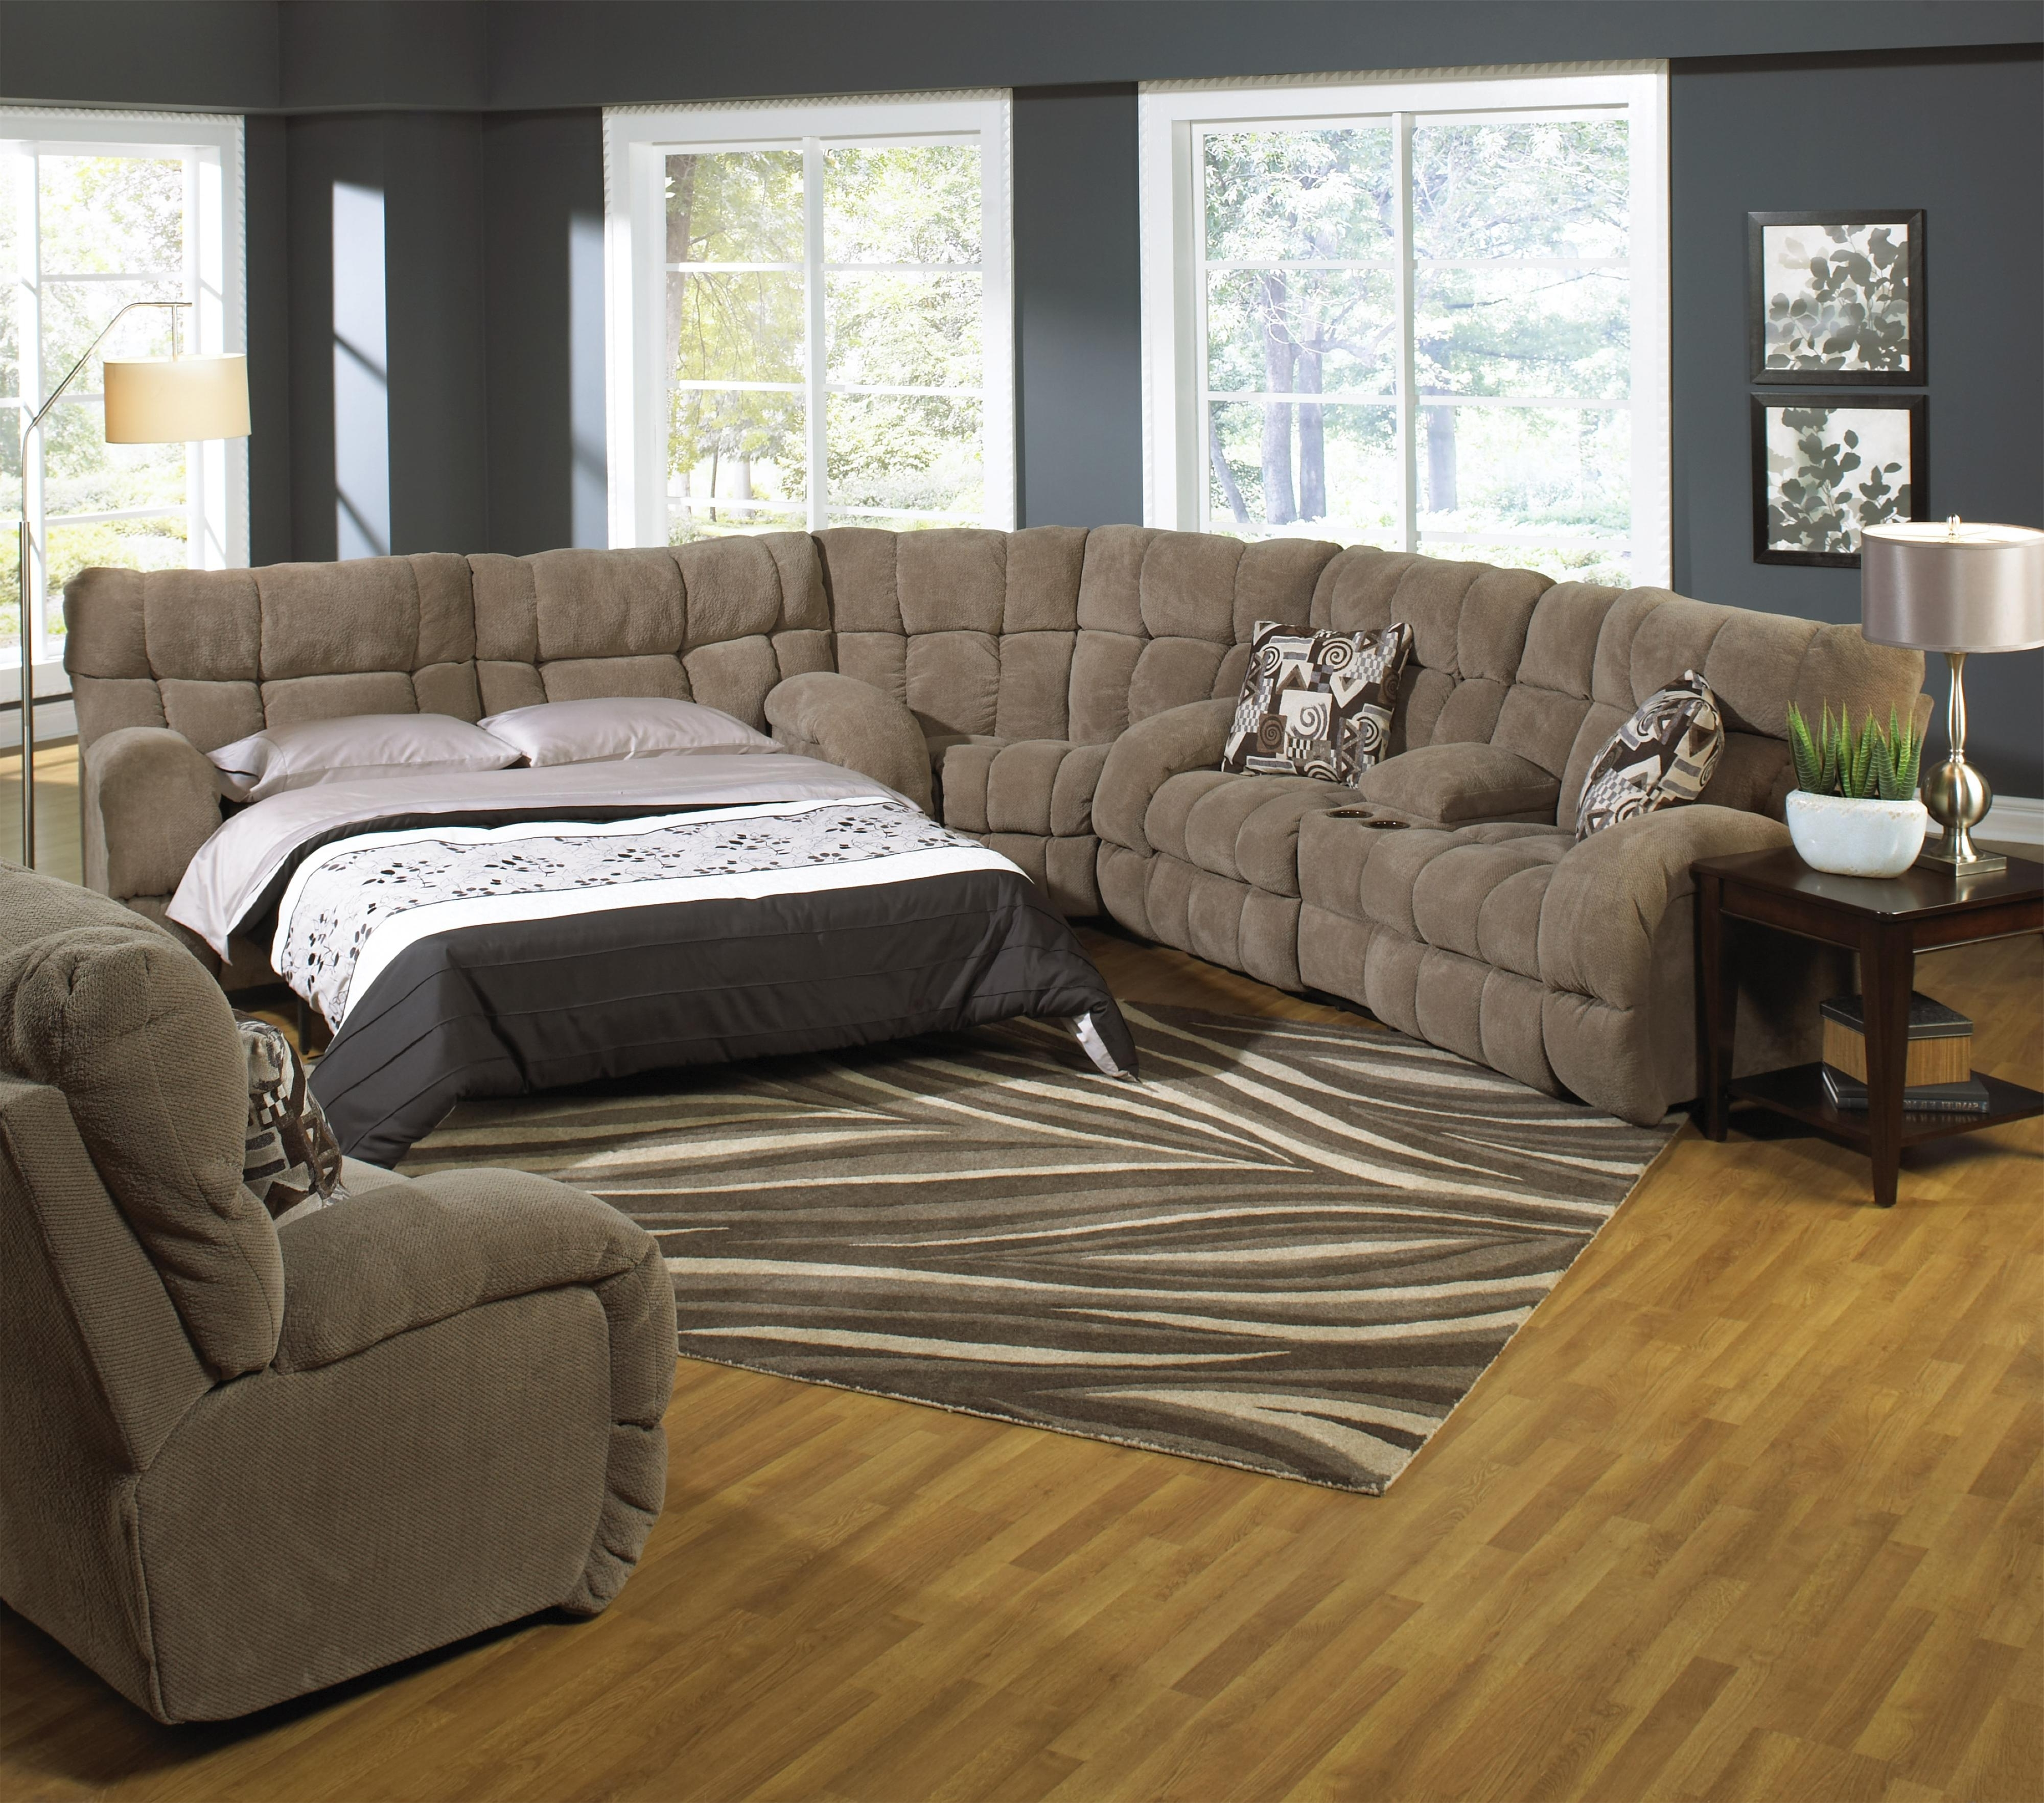 Wolf And Intended For Sectional Sofas With Recliners (View 10 of 15)